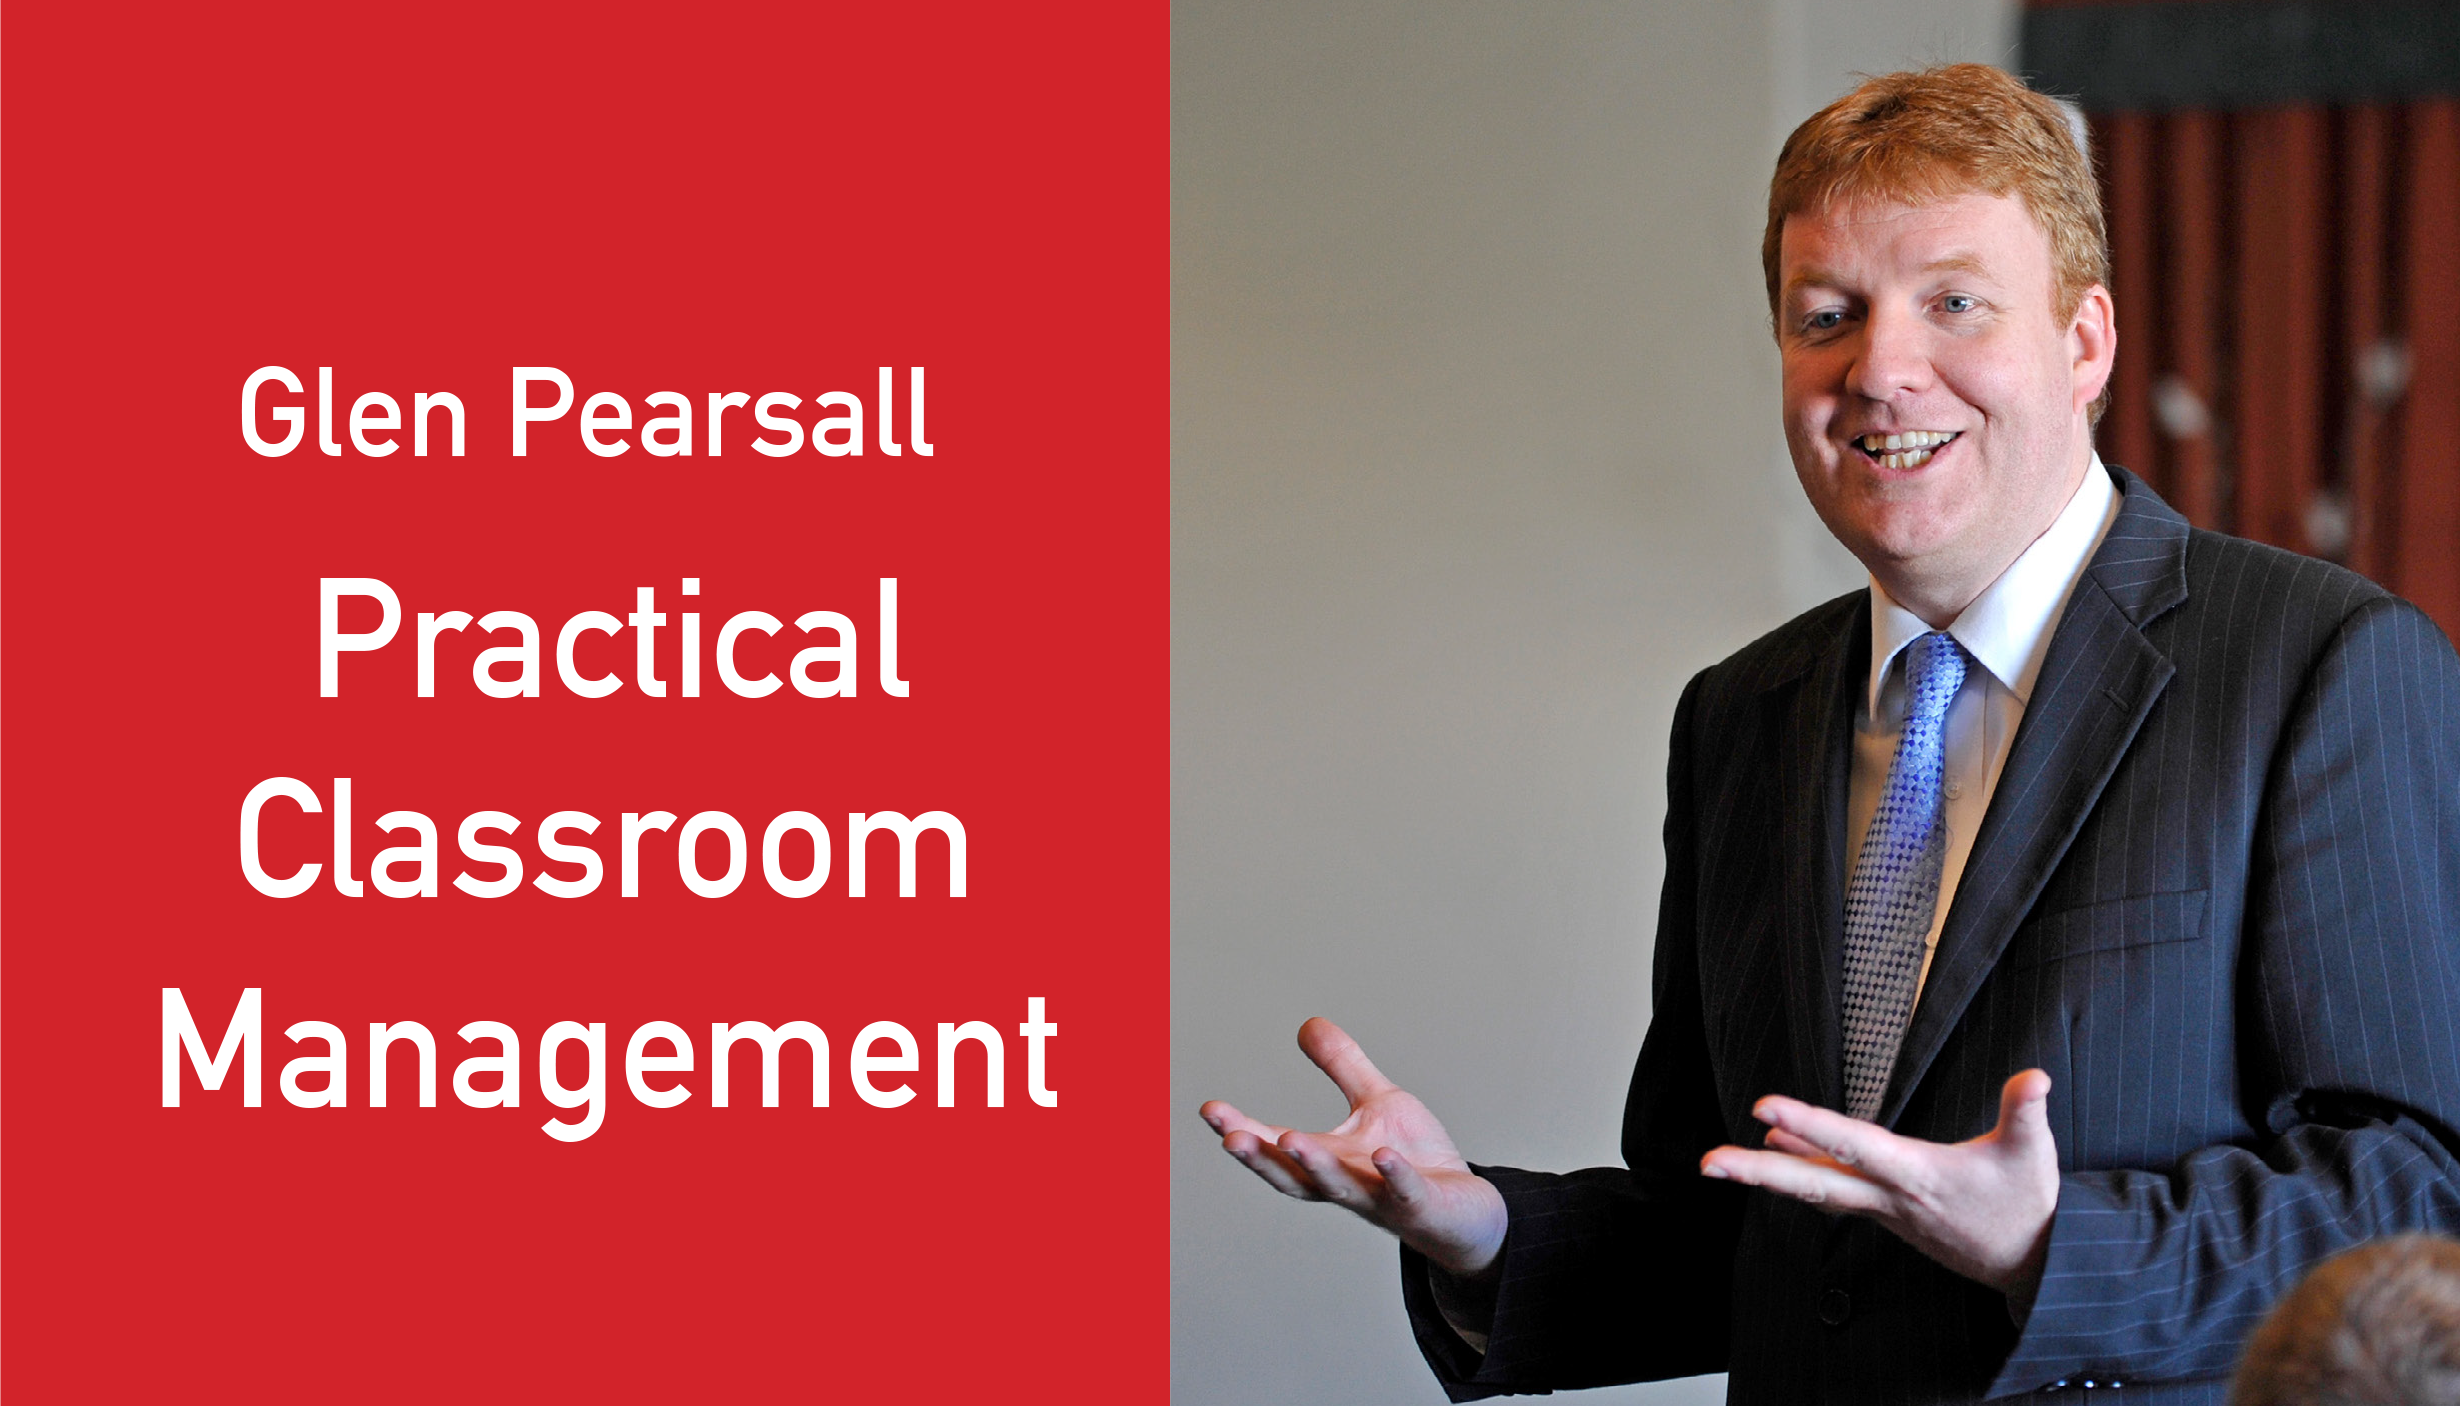 PRACTICAL CLASSROOM MANAGEMENT - GLEN PEARSALL